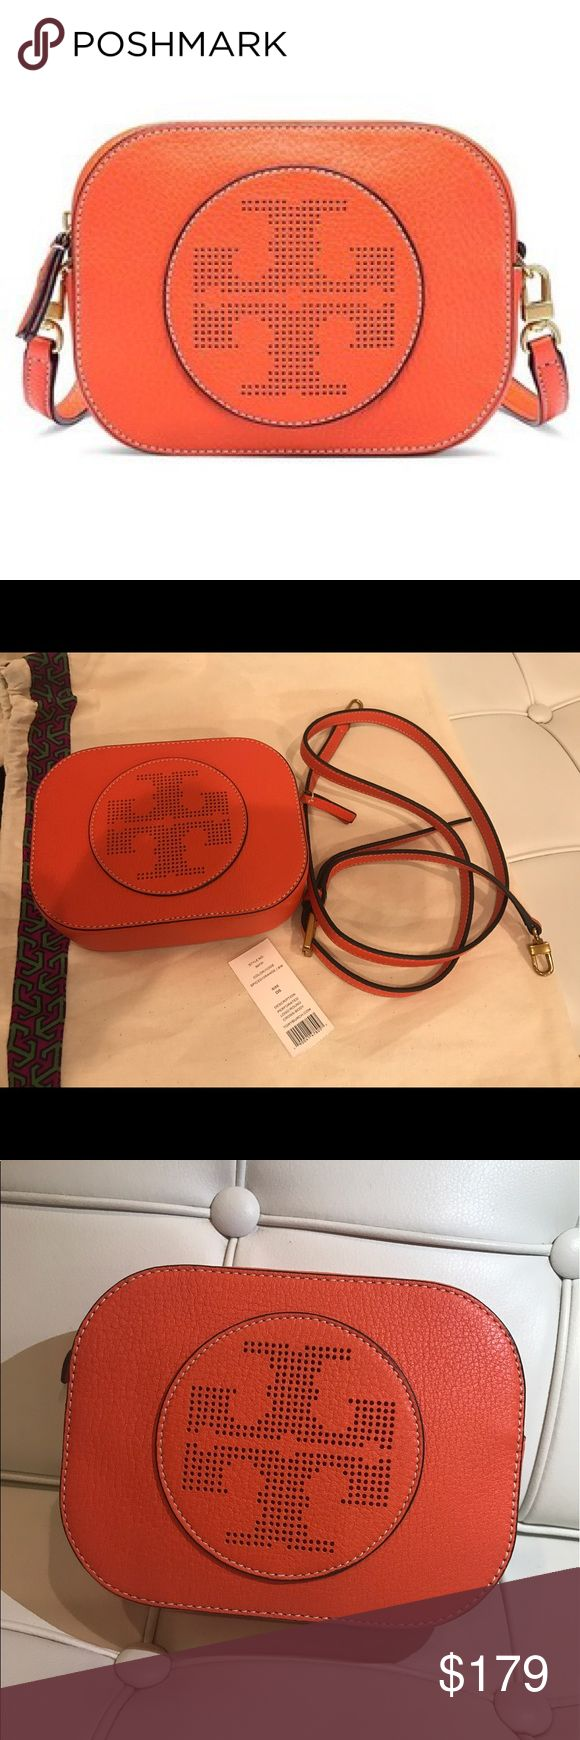 "NWT Tory Burch Perforated logo Round Crossbody. NWT Tory Burch Perforated Round Crossbody with iconic double 'T': Made of pebbled leather, the mini shape is detailed with a secure zipper closure and an adjustable strap. Comes with Dustbag. DETAILS & FIT Holds a mini wallet and an iPhone 6 Plus Pebbled leather Zipper closure Adjustable cross-body strap with 23.31"" (58.5 cm) drop 1 interior slit pocket Height: 4.98"" (12.5 cm) Length: 6.57"" (16.5 cm) Depth: 1.99"" (5 cm) 🚫No Trades🚫 Price…"